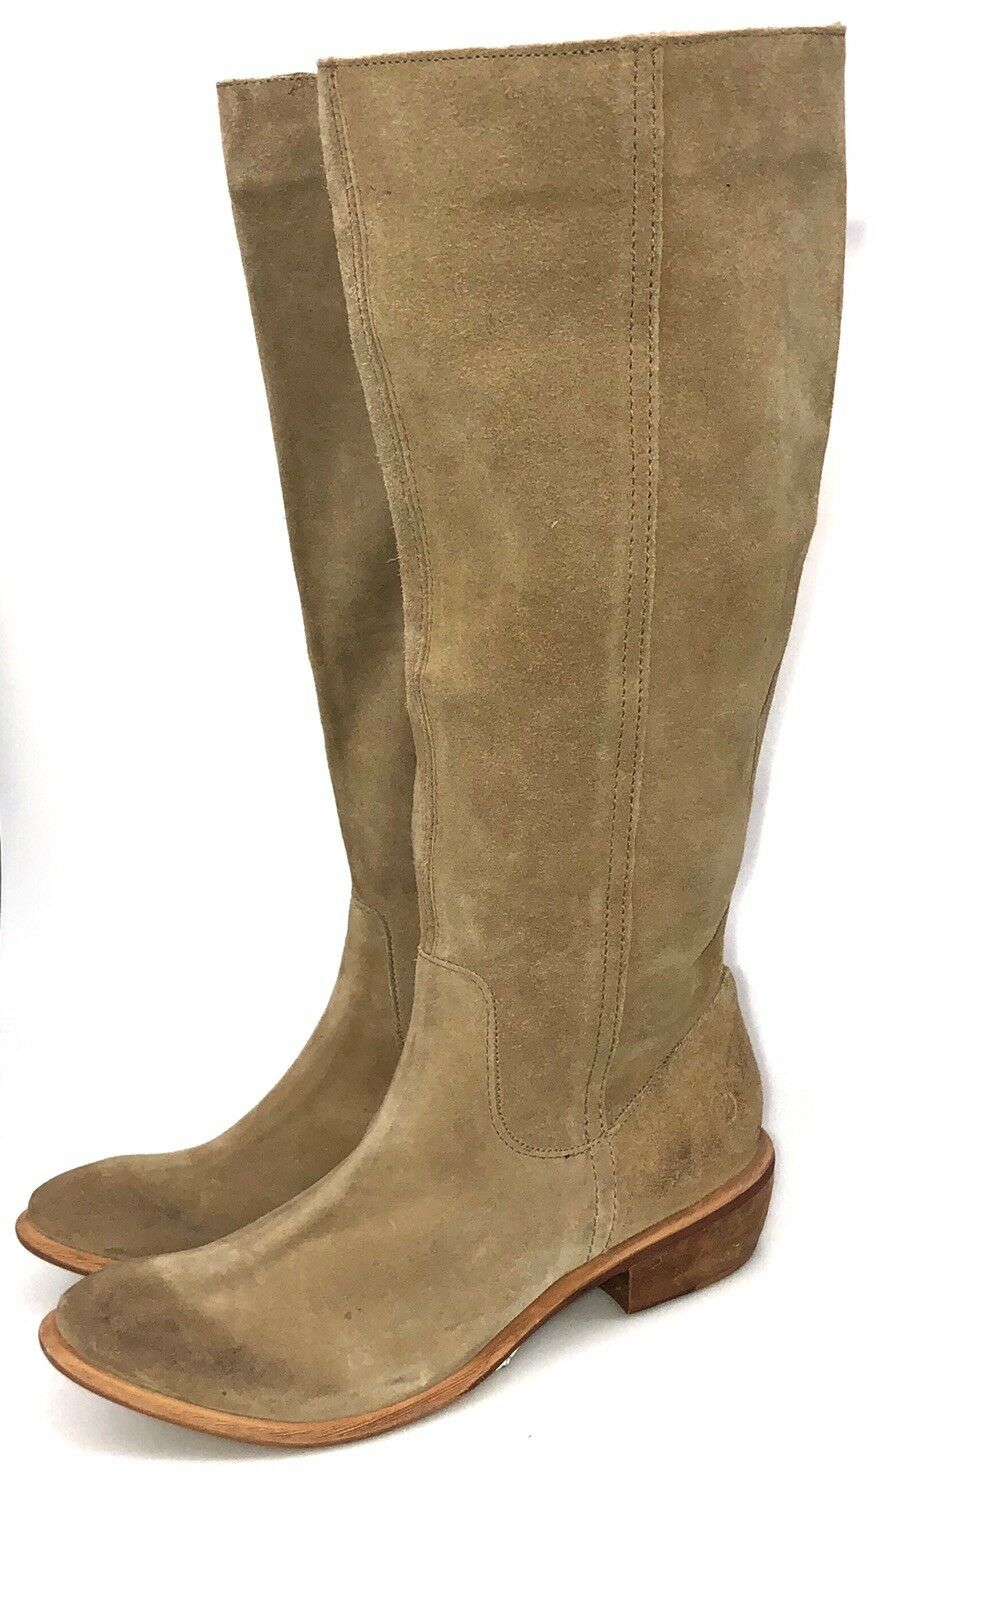 BRONX  Tall Knee High Suede Leather bottes Taille 41 Pull On Fashion